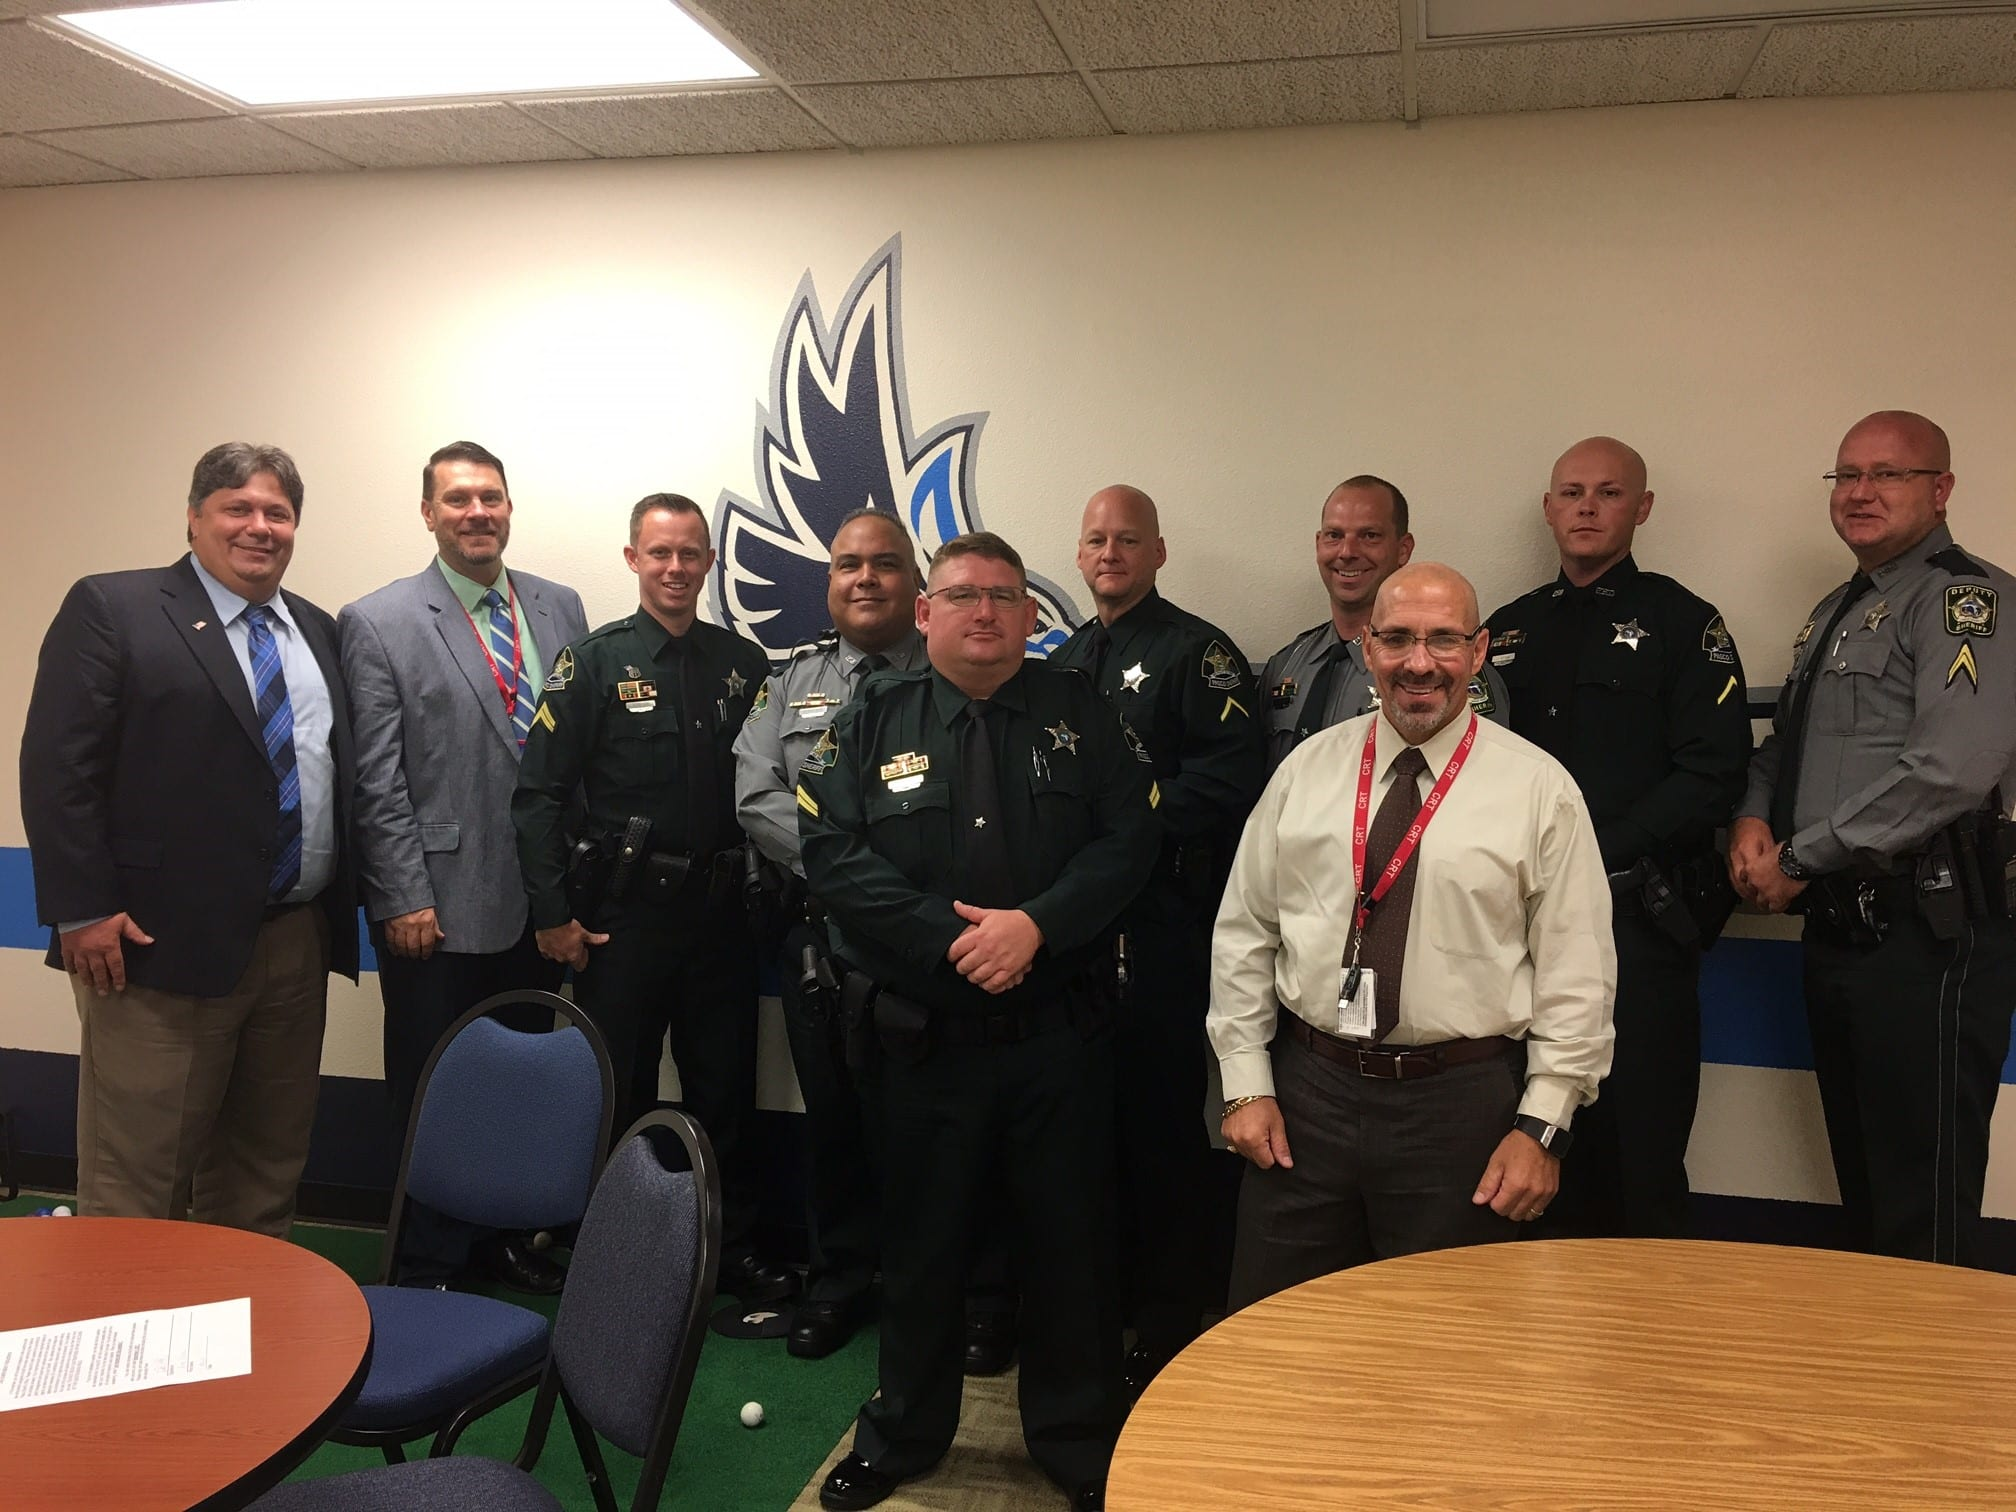 New Port Richey Campus Hosts the Pasco County Sheriff's Office